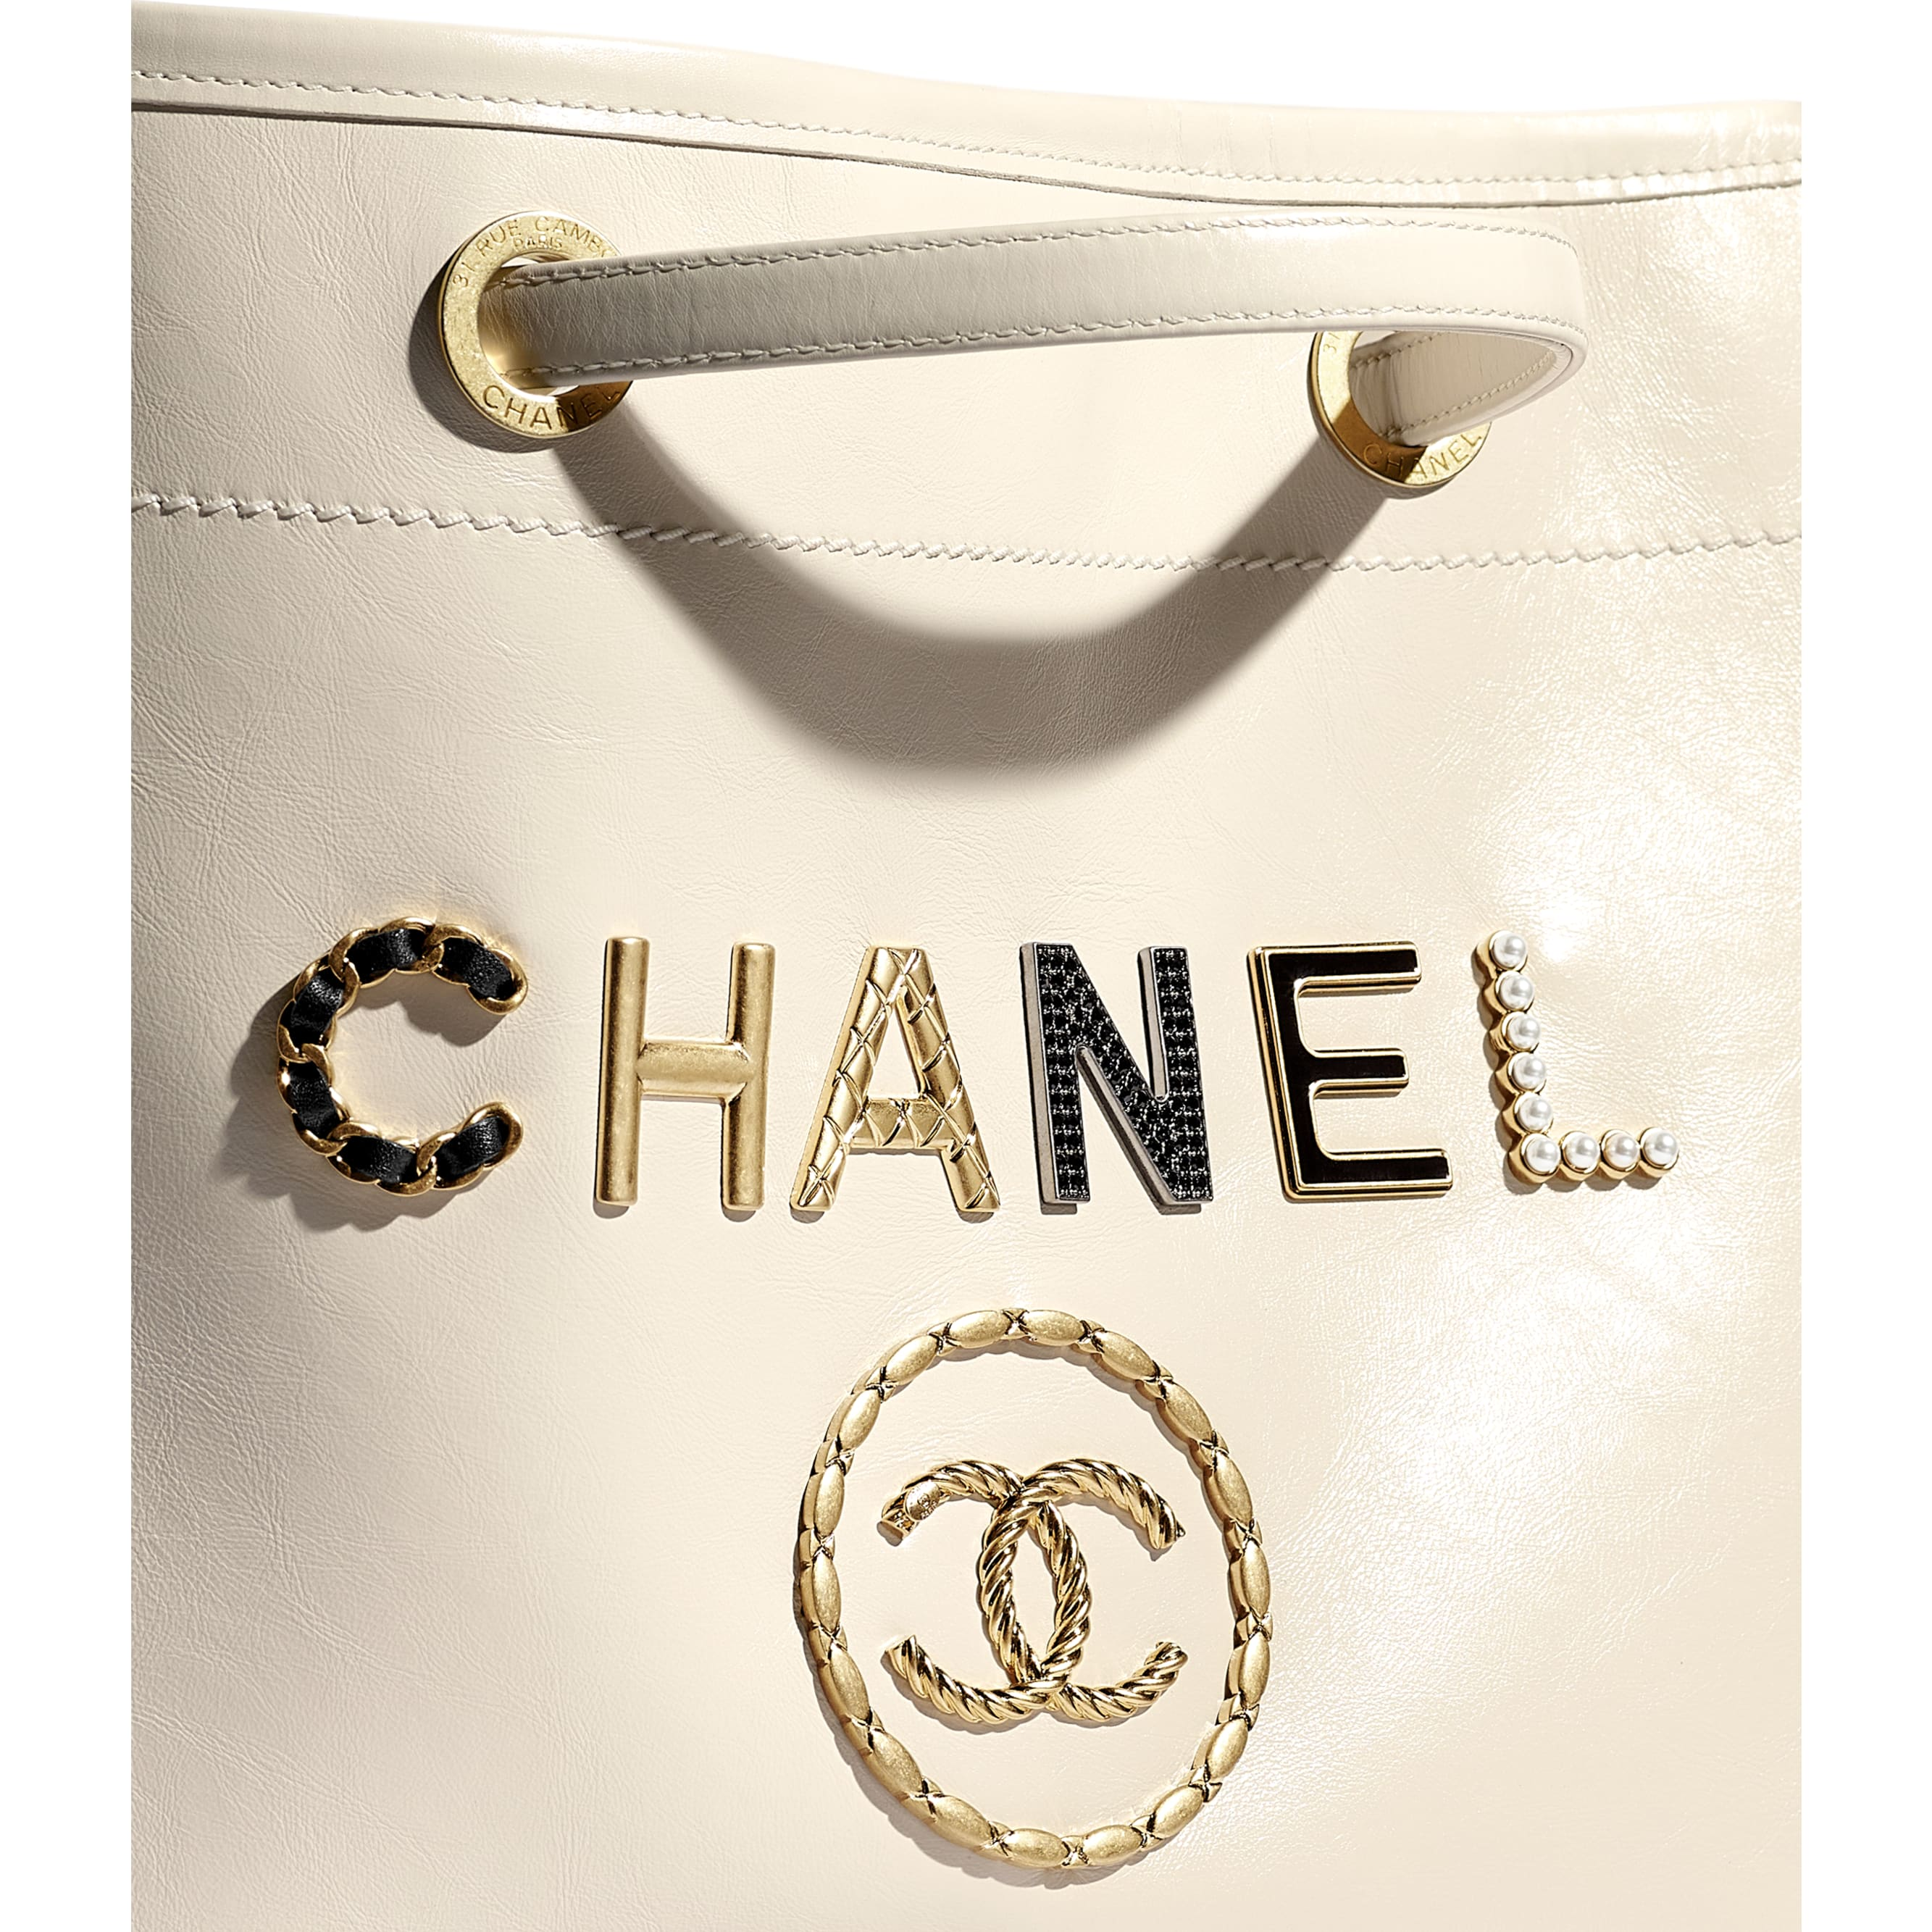 Shopping Bag - Ecru - Shiny Calfskin, Crystal Pearls, Diamante, Enamel, Gold-Tone & Ruthenium-Finish Metal - CHANEL - Extra view - see standard sized version